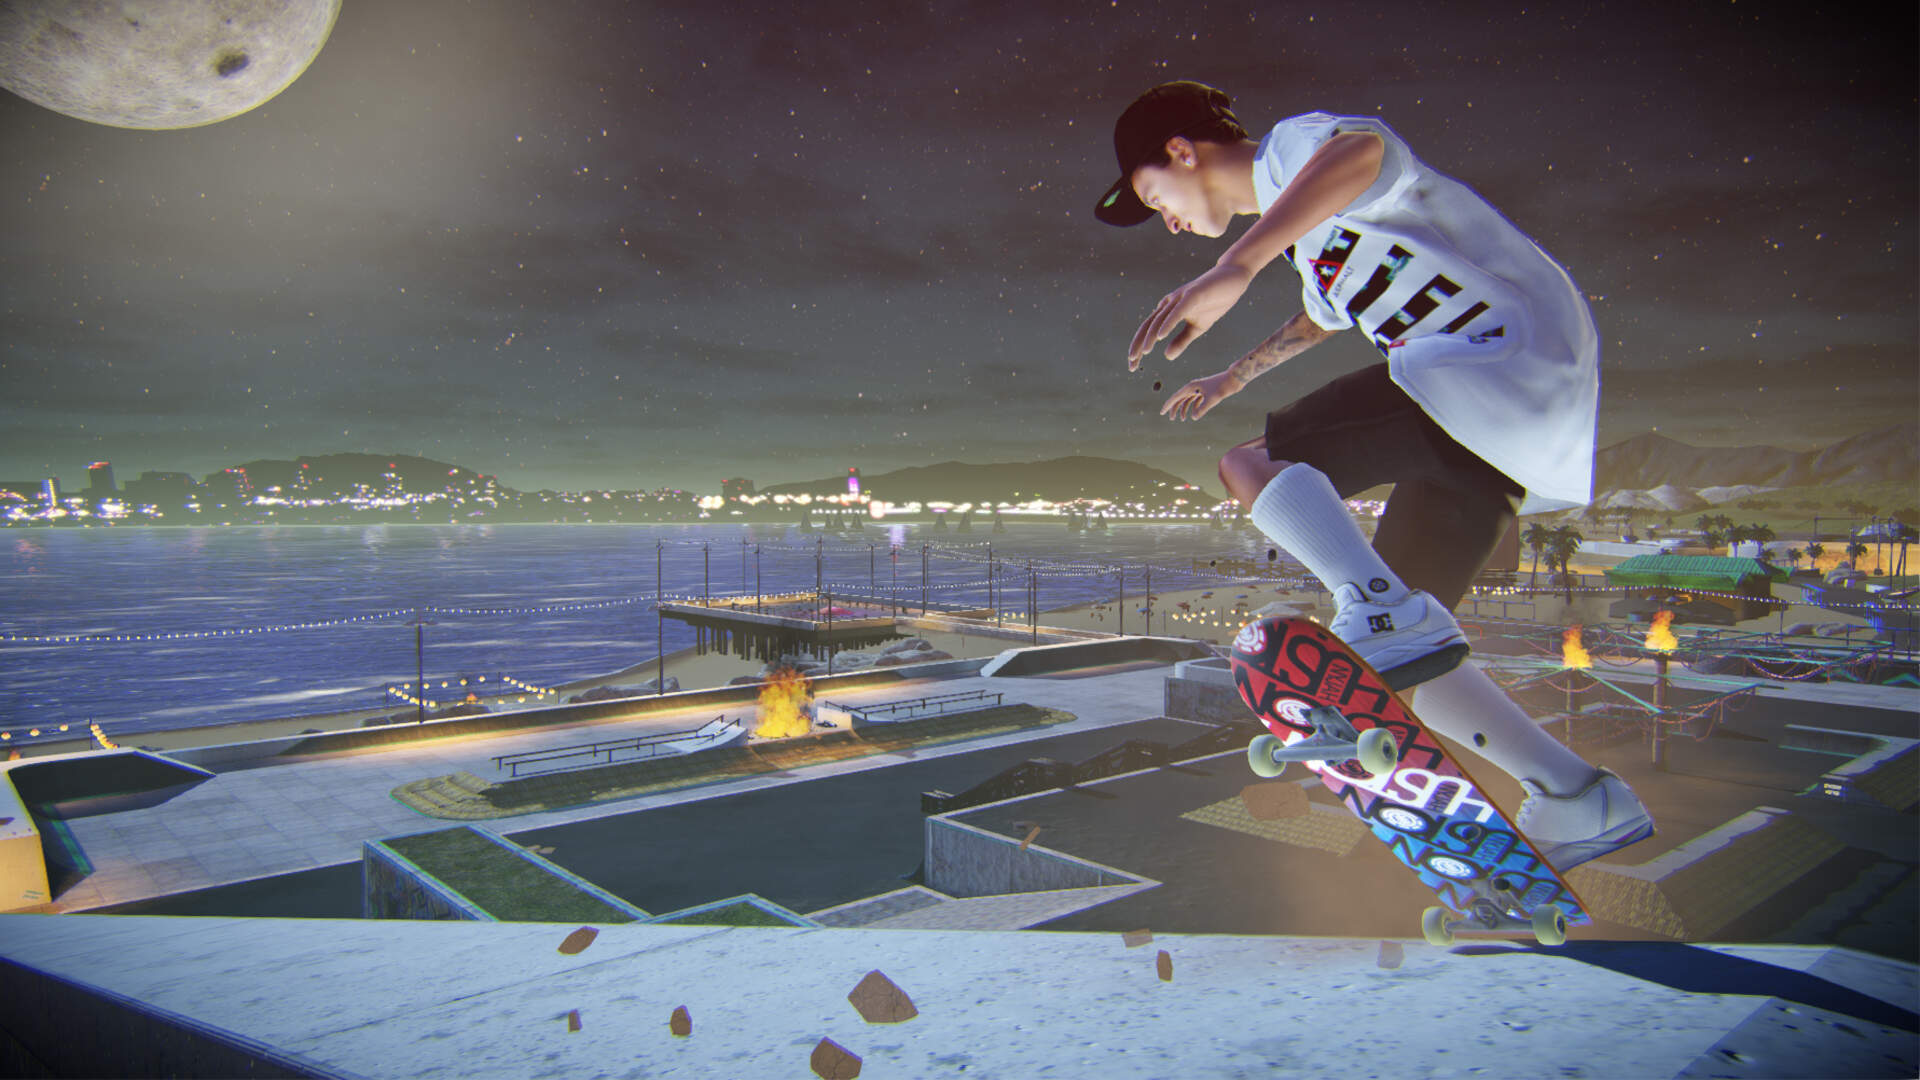 Tony Hawk Pro Skater Revival Rumors Get a New Boost From a Punk Band